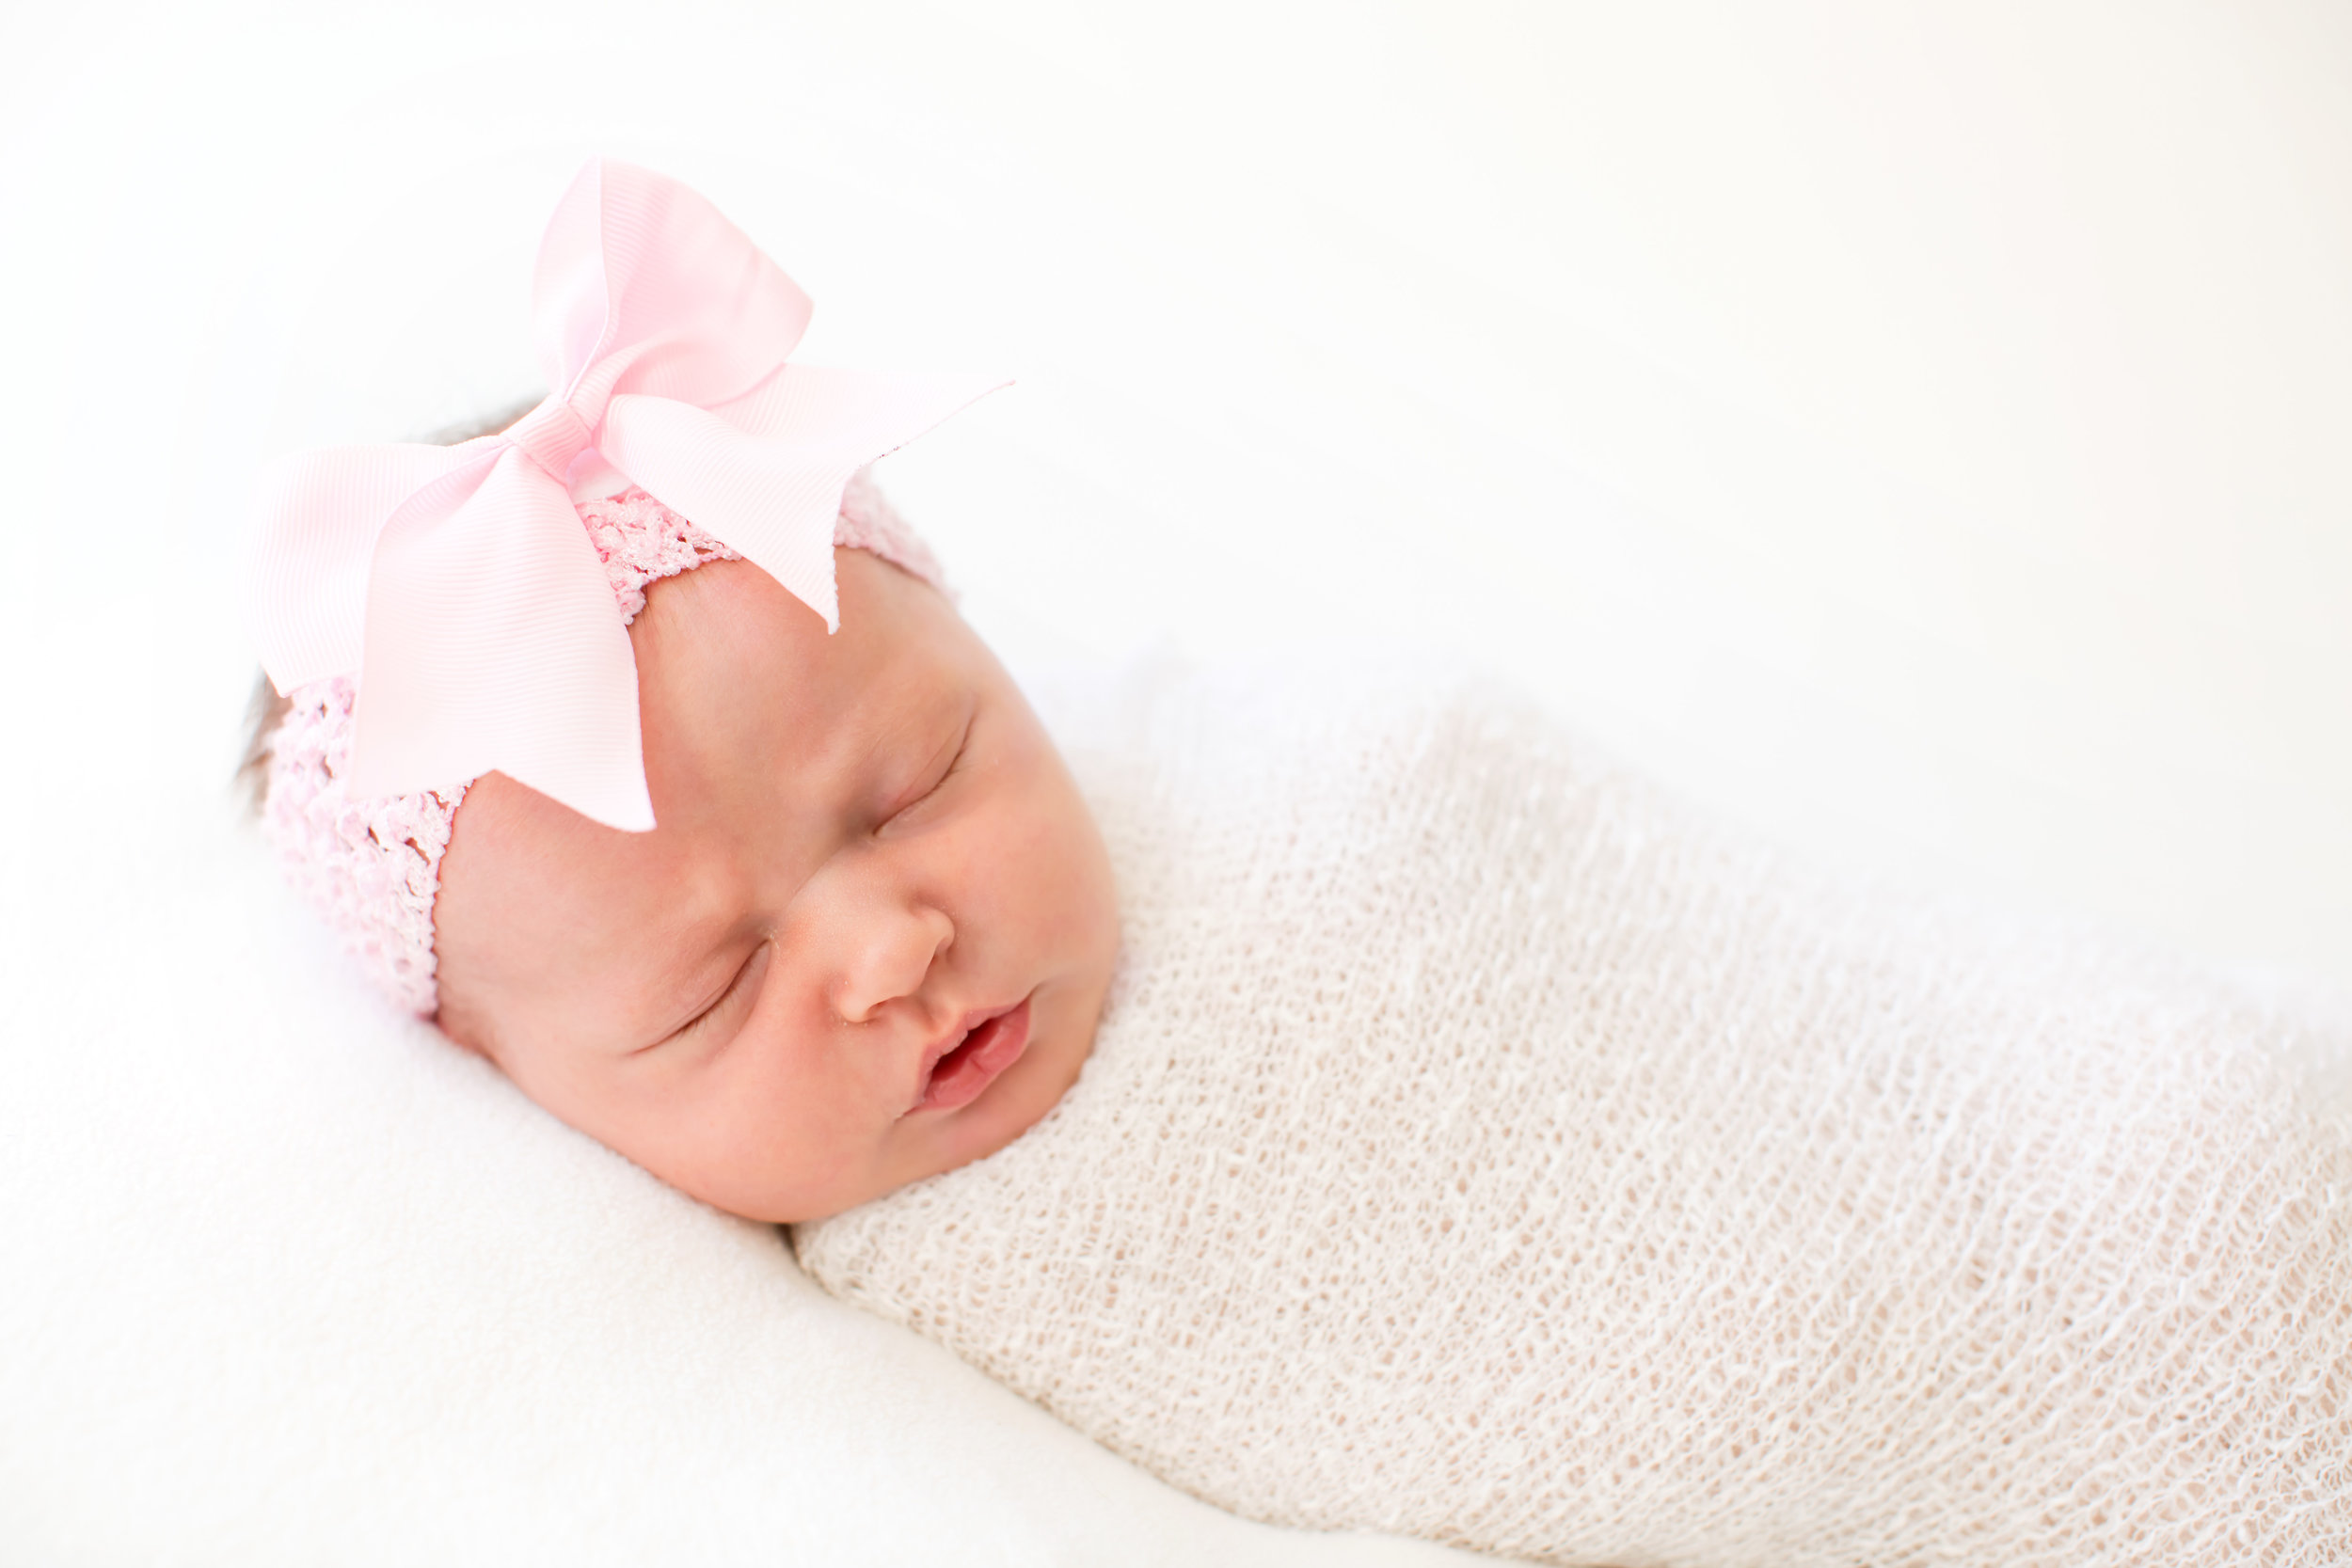 norfolk-newborn-photographer-04.jpg